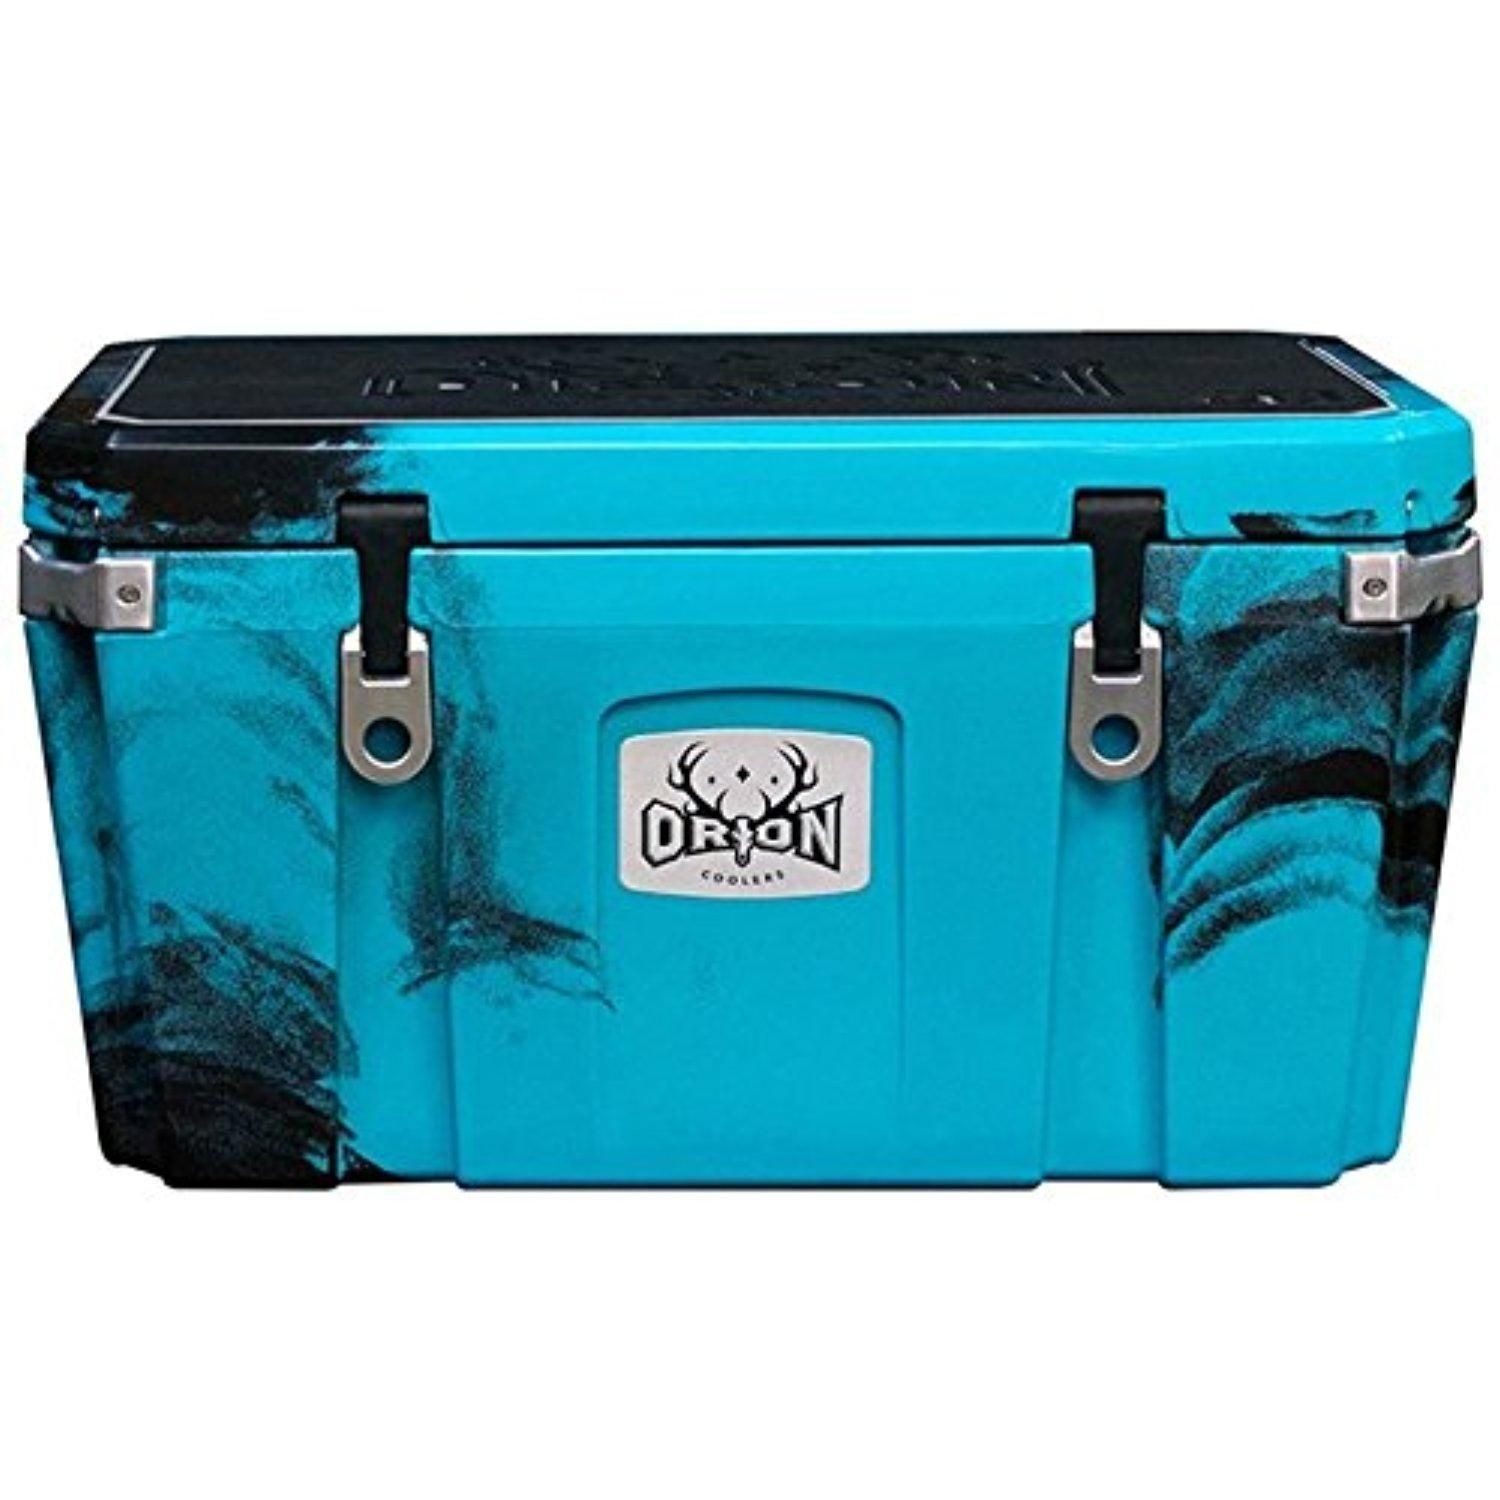 Orion Coolers Orion Bluefin 65 Cooler Brought To You By Avarsha